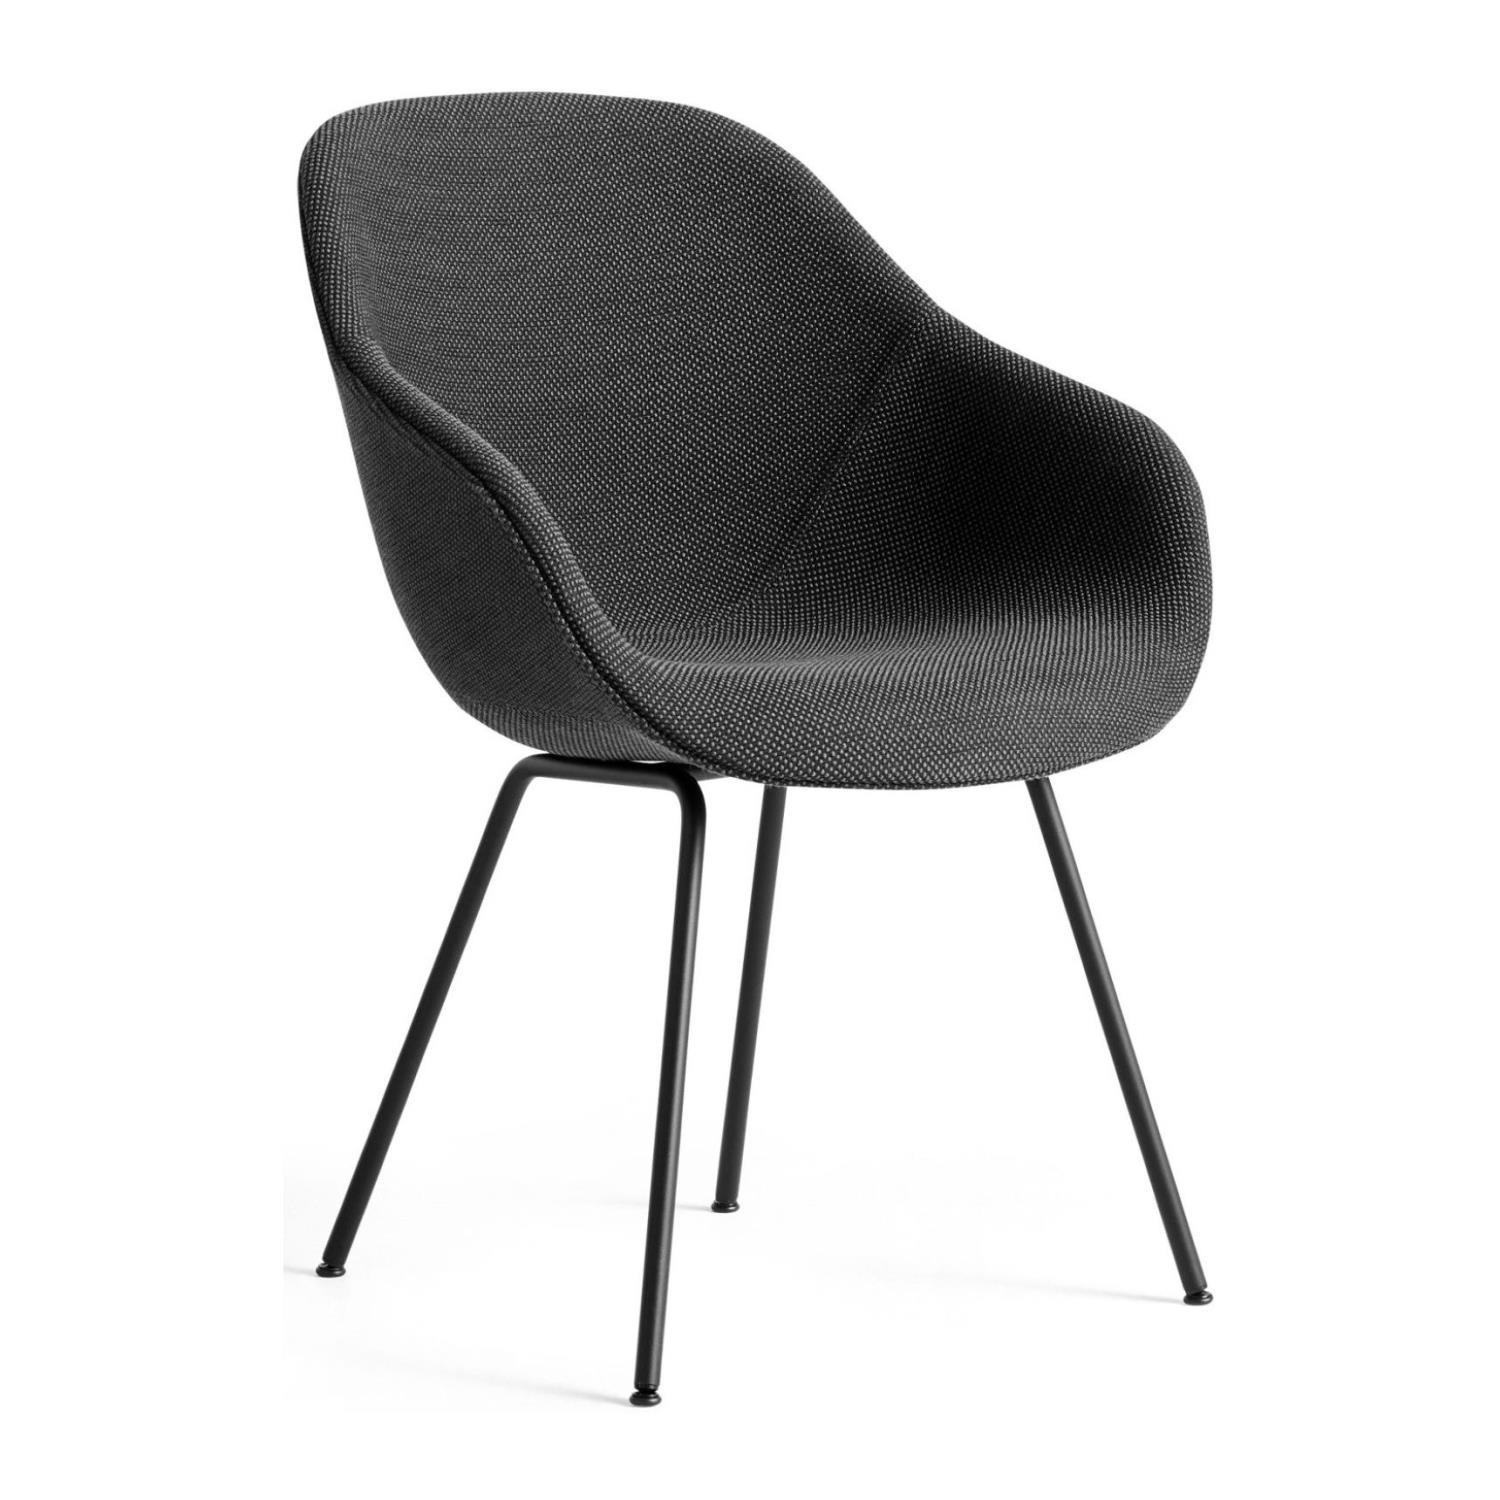 AAC 127 | About A Chair